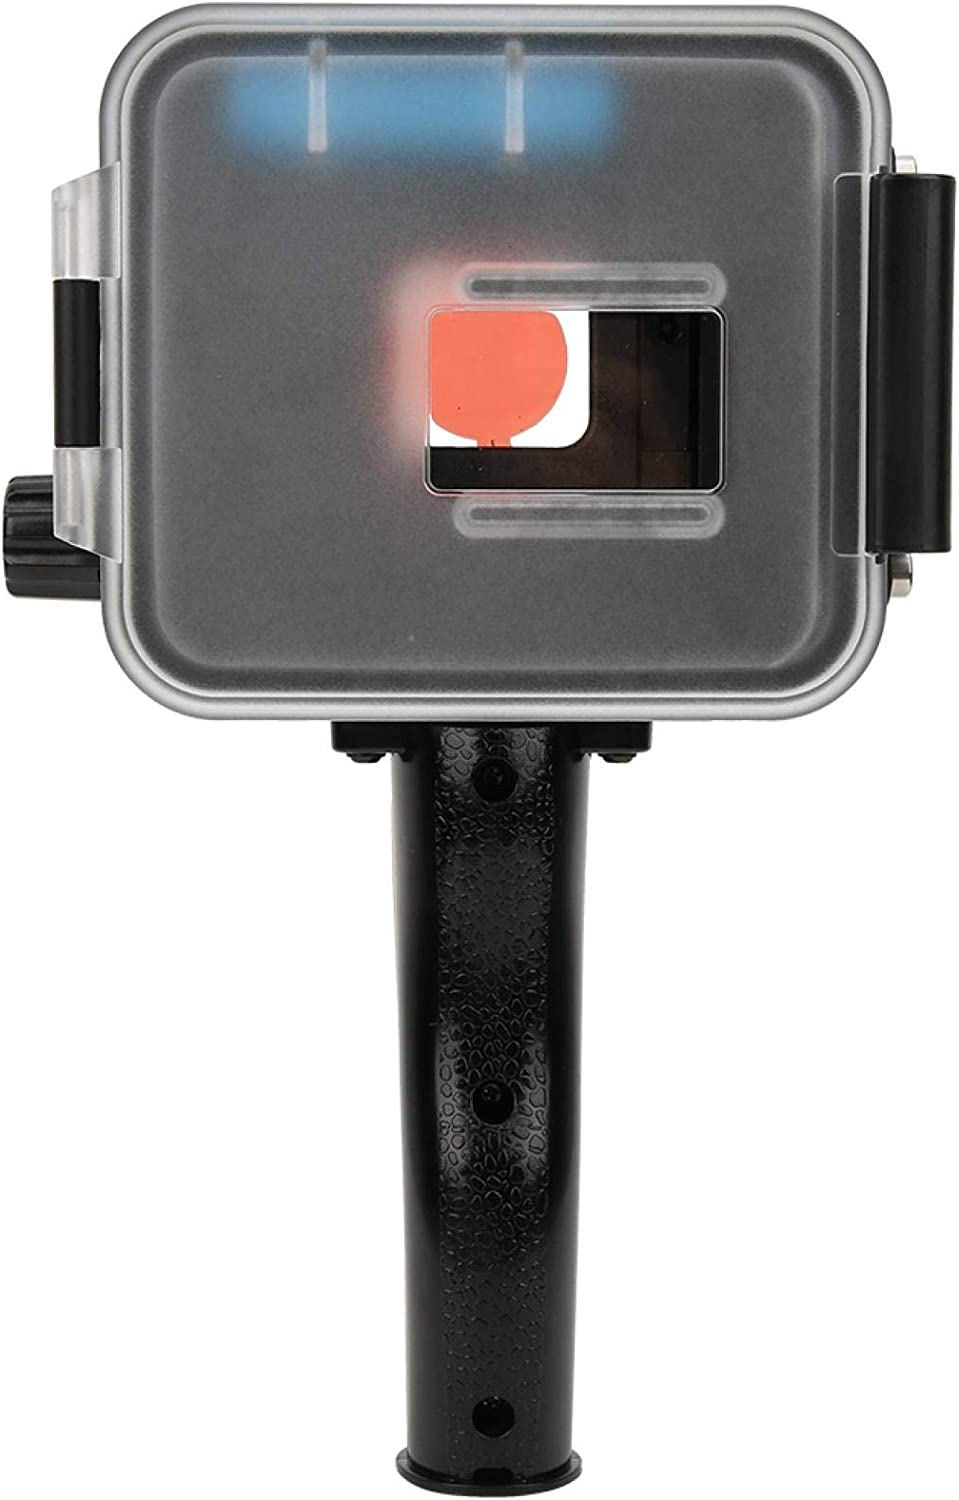 Max 64% OFF Camera Waterproof Max 67% OFF Diving Housing Wate Case 35M